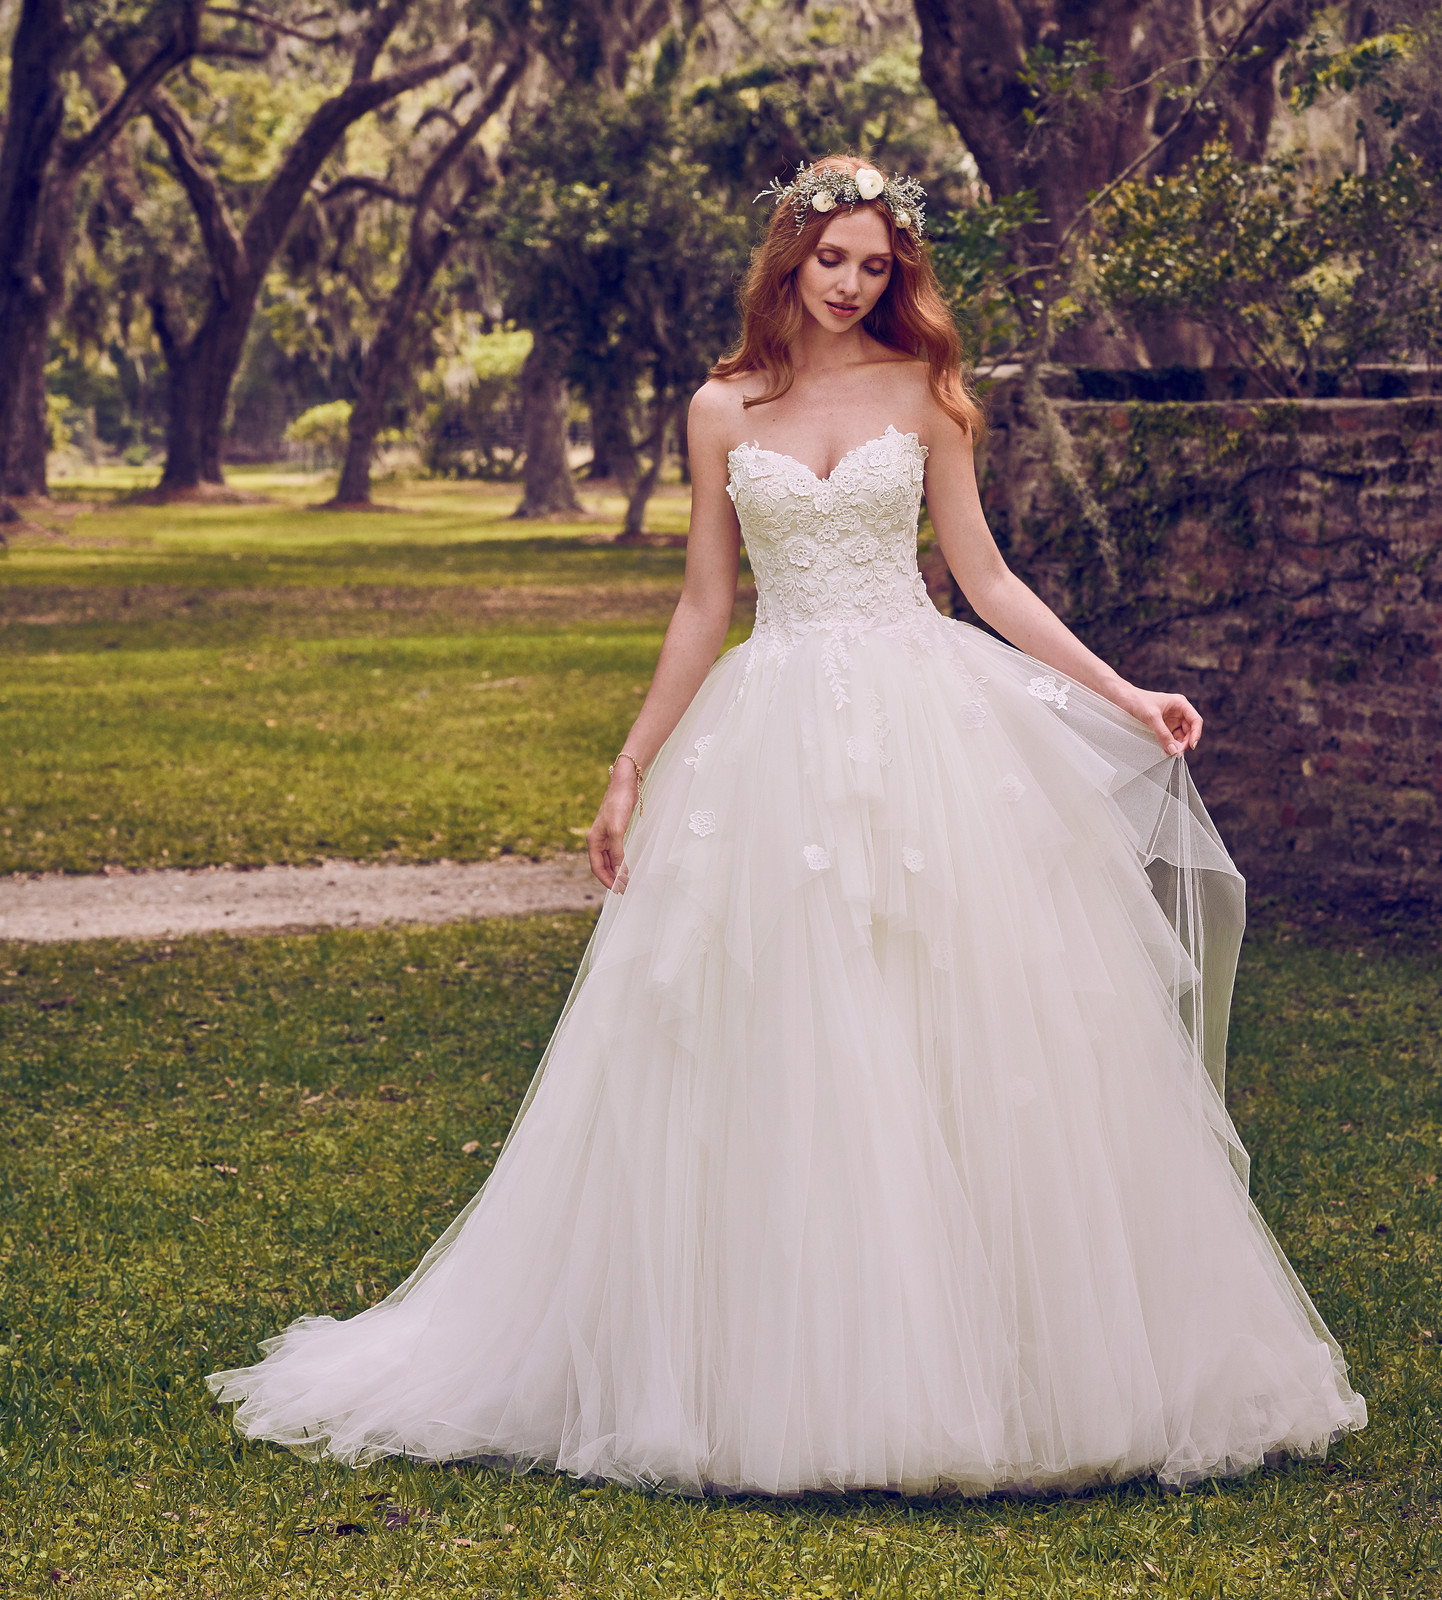 Bliss bridal bolton bridal gowns 3d floral lace motifs accent the bodice and sweetheart neckline in this princess wedding dress lightly cascading into a tiered tulle ballgown skirt ombrellifo Gallery